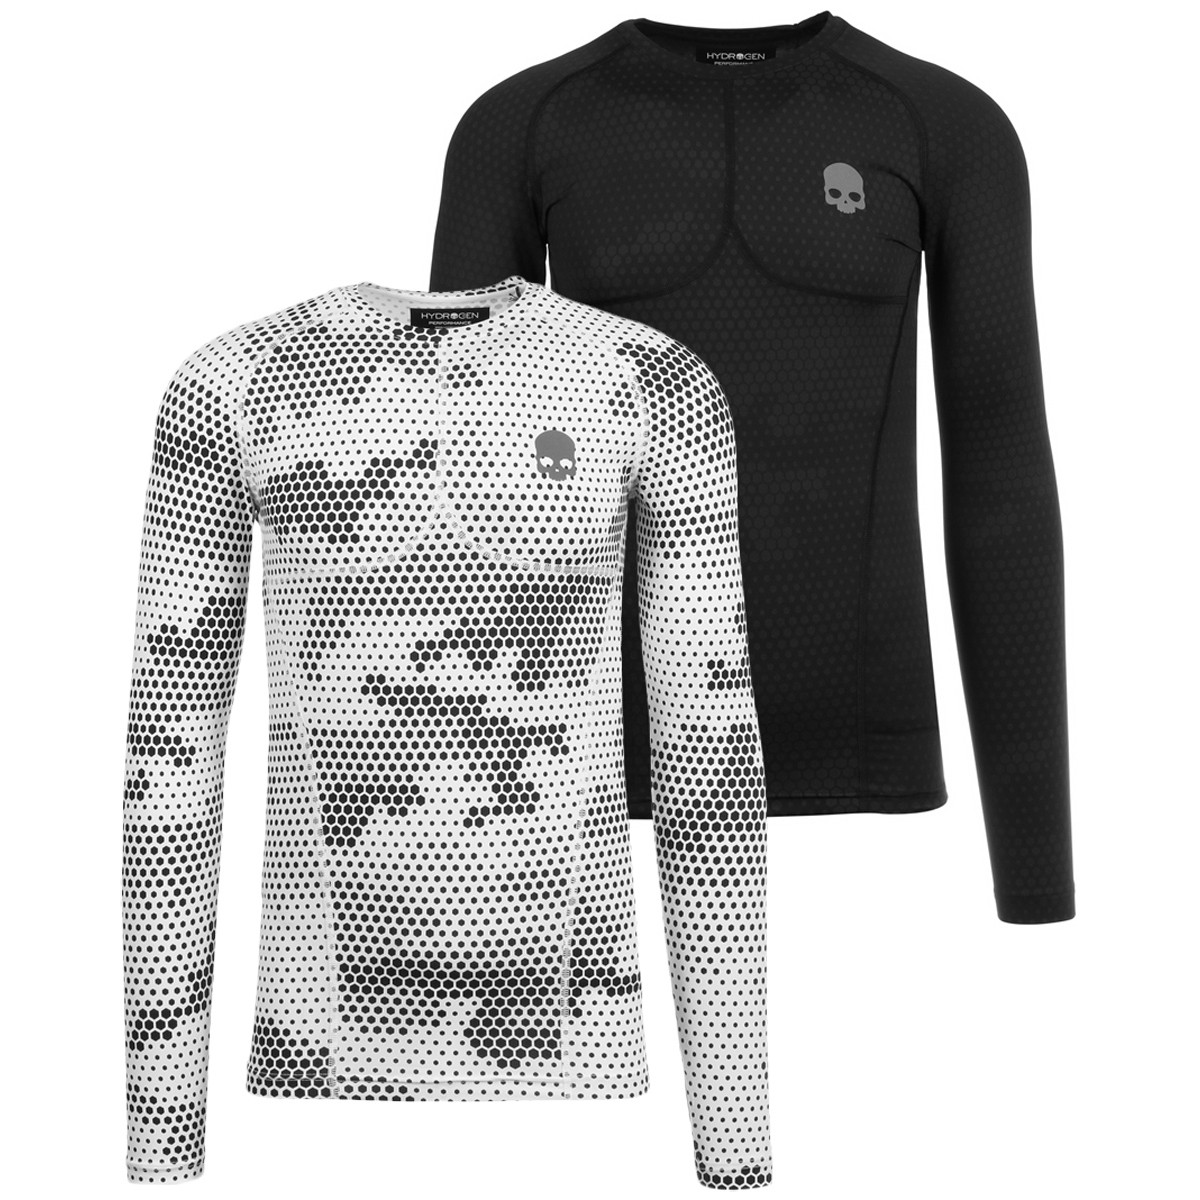 T-SHIRT COMPRESSION HYDROGEN PRINTED SECOND SKIN MANCHES LONGUES